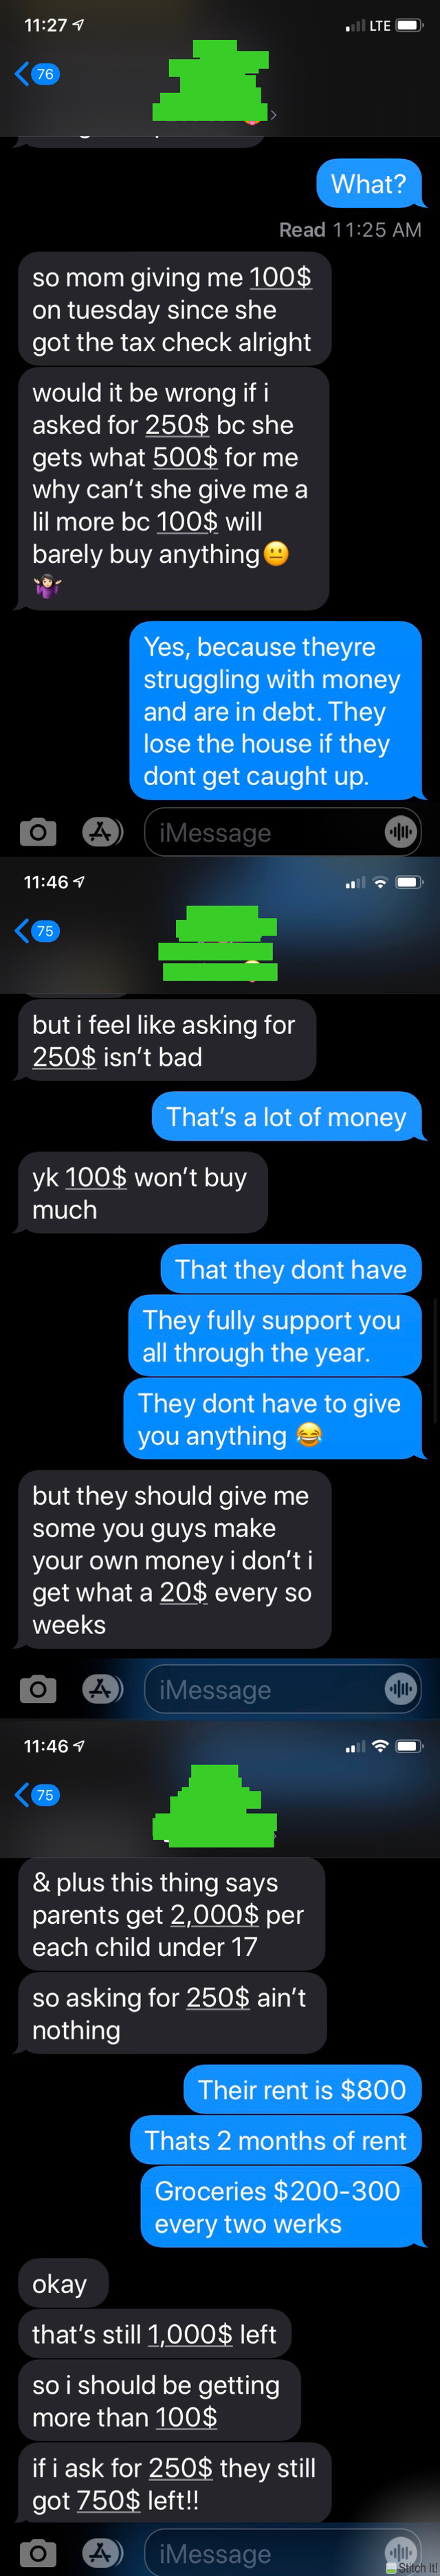 Text - 11:27 1 l LTE 76 What? Read 11:25 AM so mom giving me 100$ on tuesday since she got the tax check alright would it be wrong if i asked for 250$ bc she gets what 500$ for me why can't she give me a lil more bc 100$ will barely buy anythinge Yes, because theyre struggling with money and are in debt. They lose the house if they dont get caught up. iMessage 11:46 1 75 but i feel like asking for 250$ isn't bad That's a lot of money yk 100$ won't buy much That they dont have They fully support